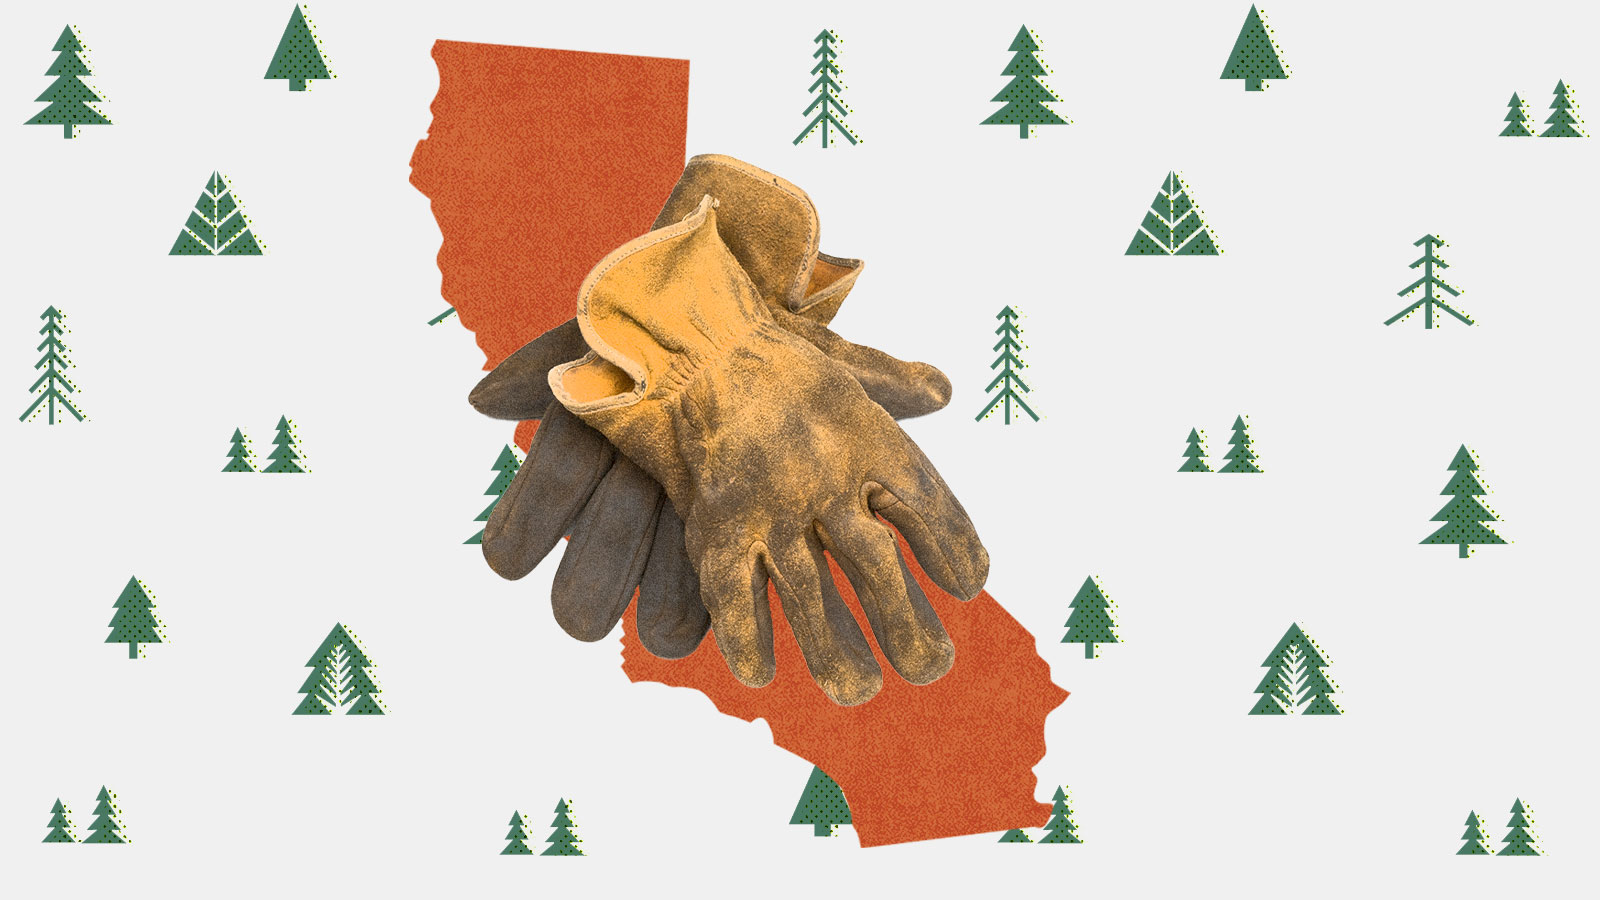 A photo collage of the silhouette of California with a pair of worn work gloves on top, and a background of illustrated conifer trees.